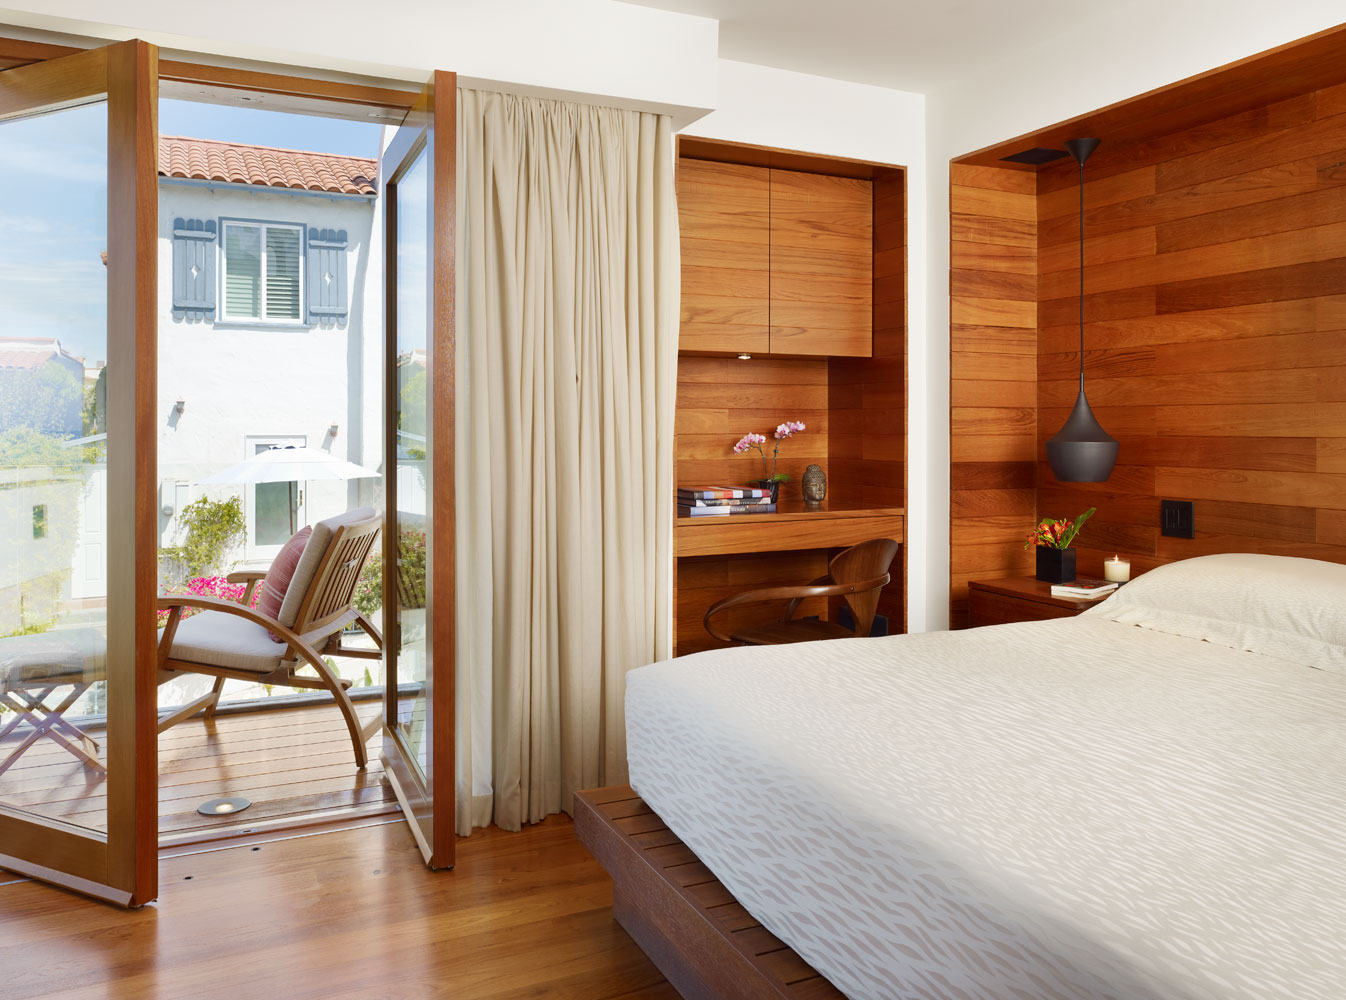 10 Tips on Small Bedroom Interior Design clean cozy atmosphere